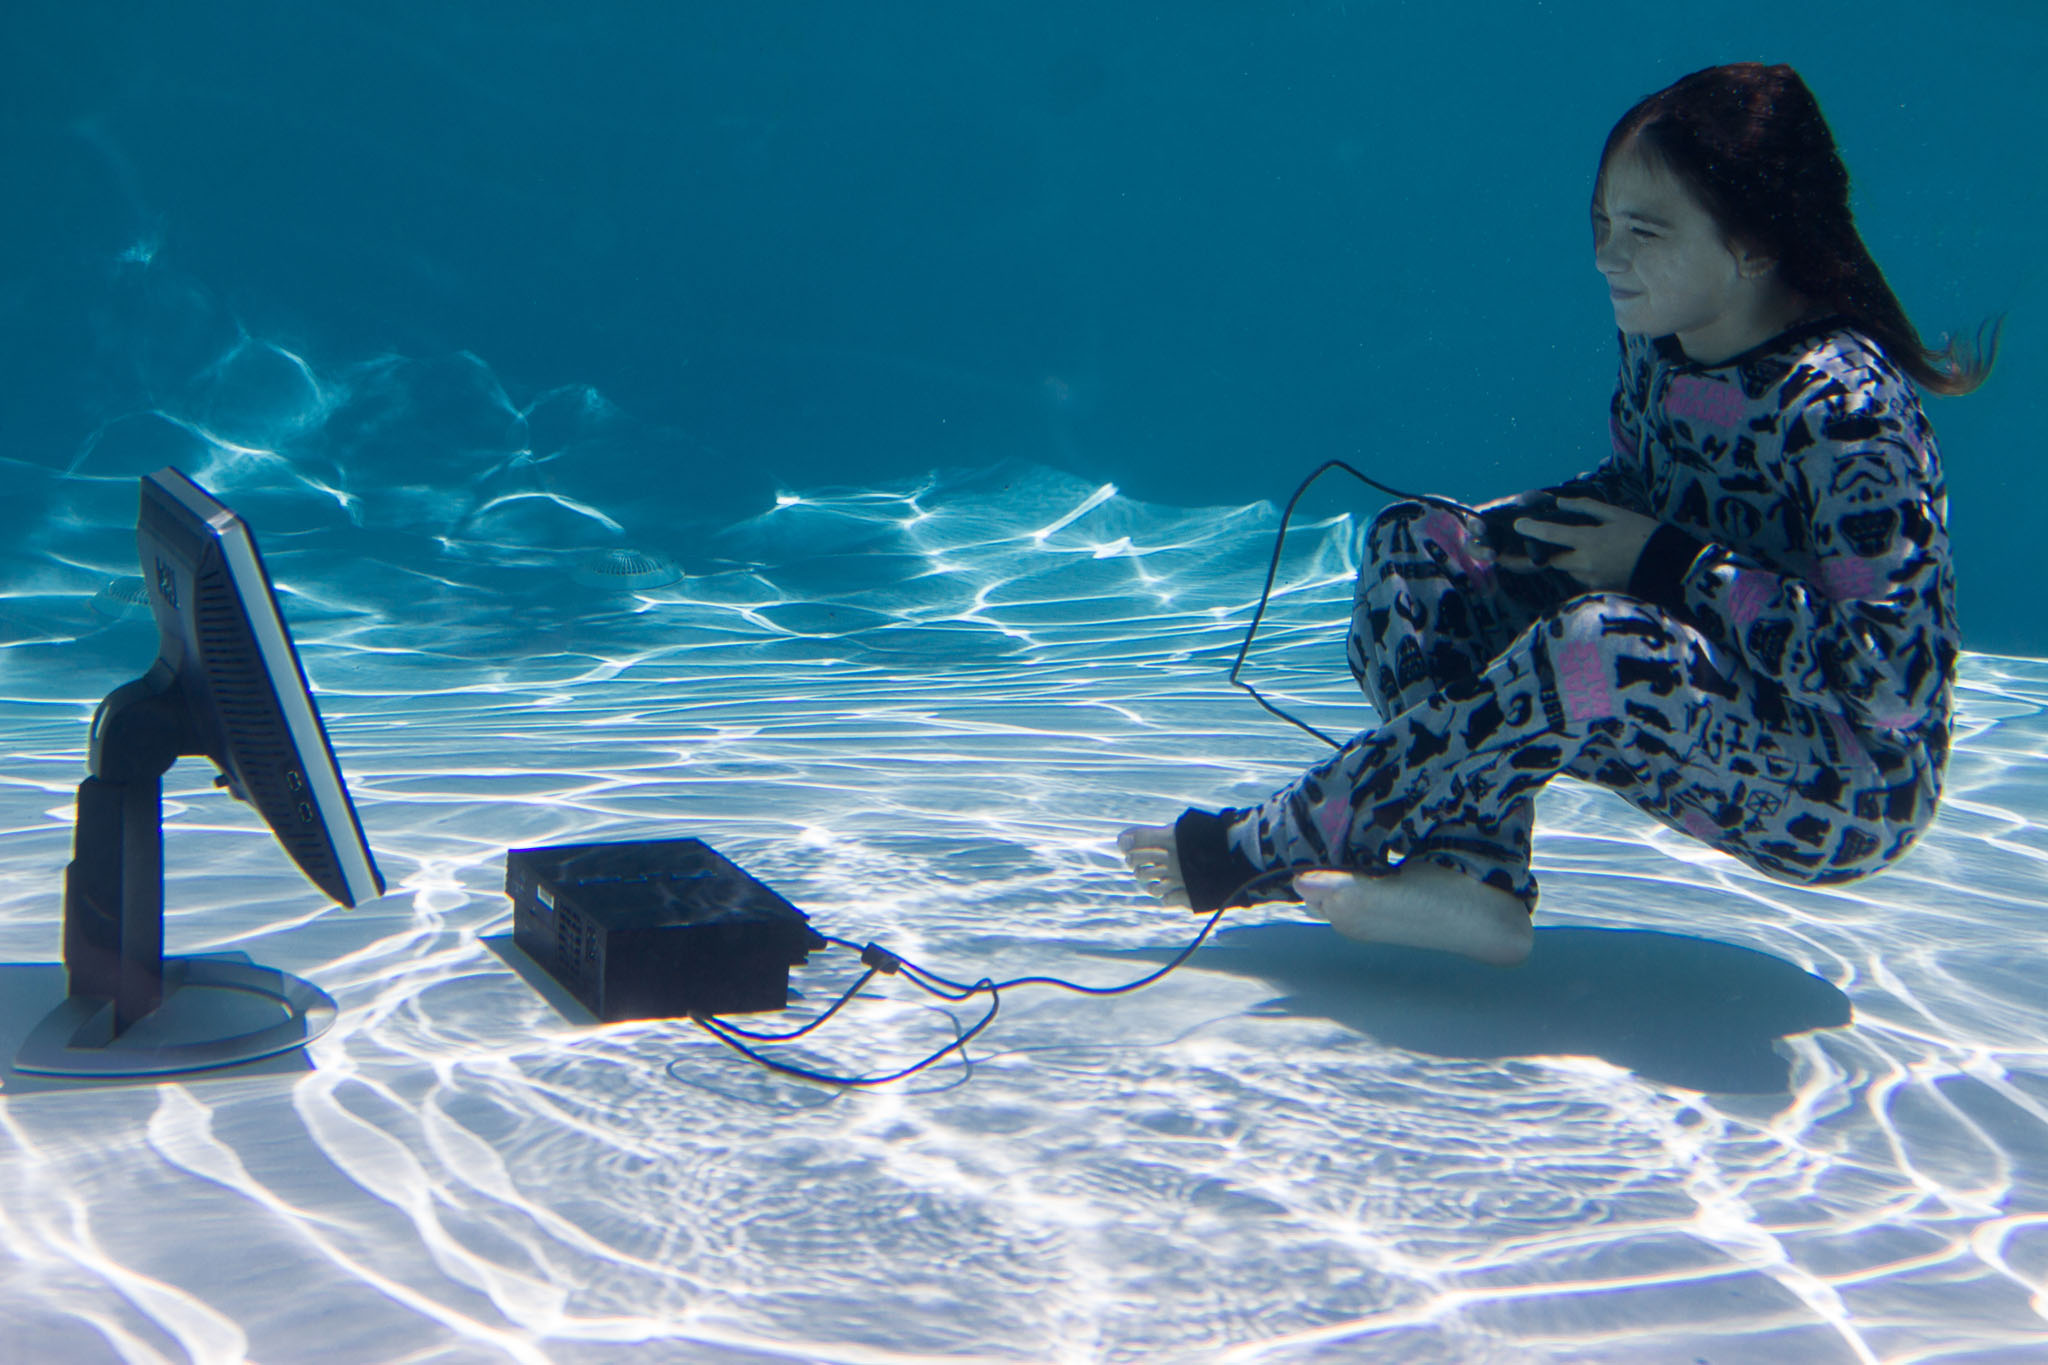 Bella playing playstation under water